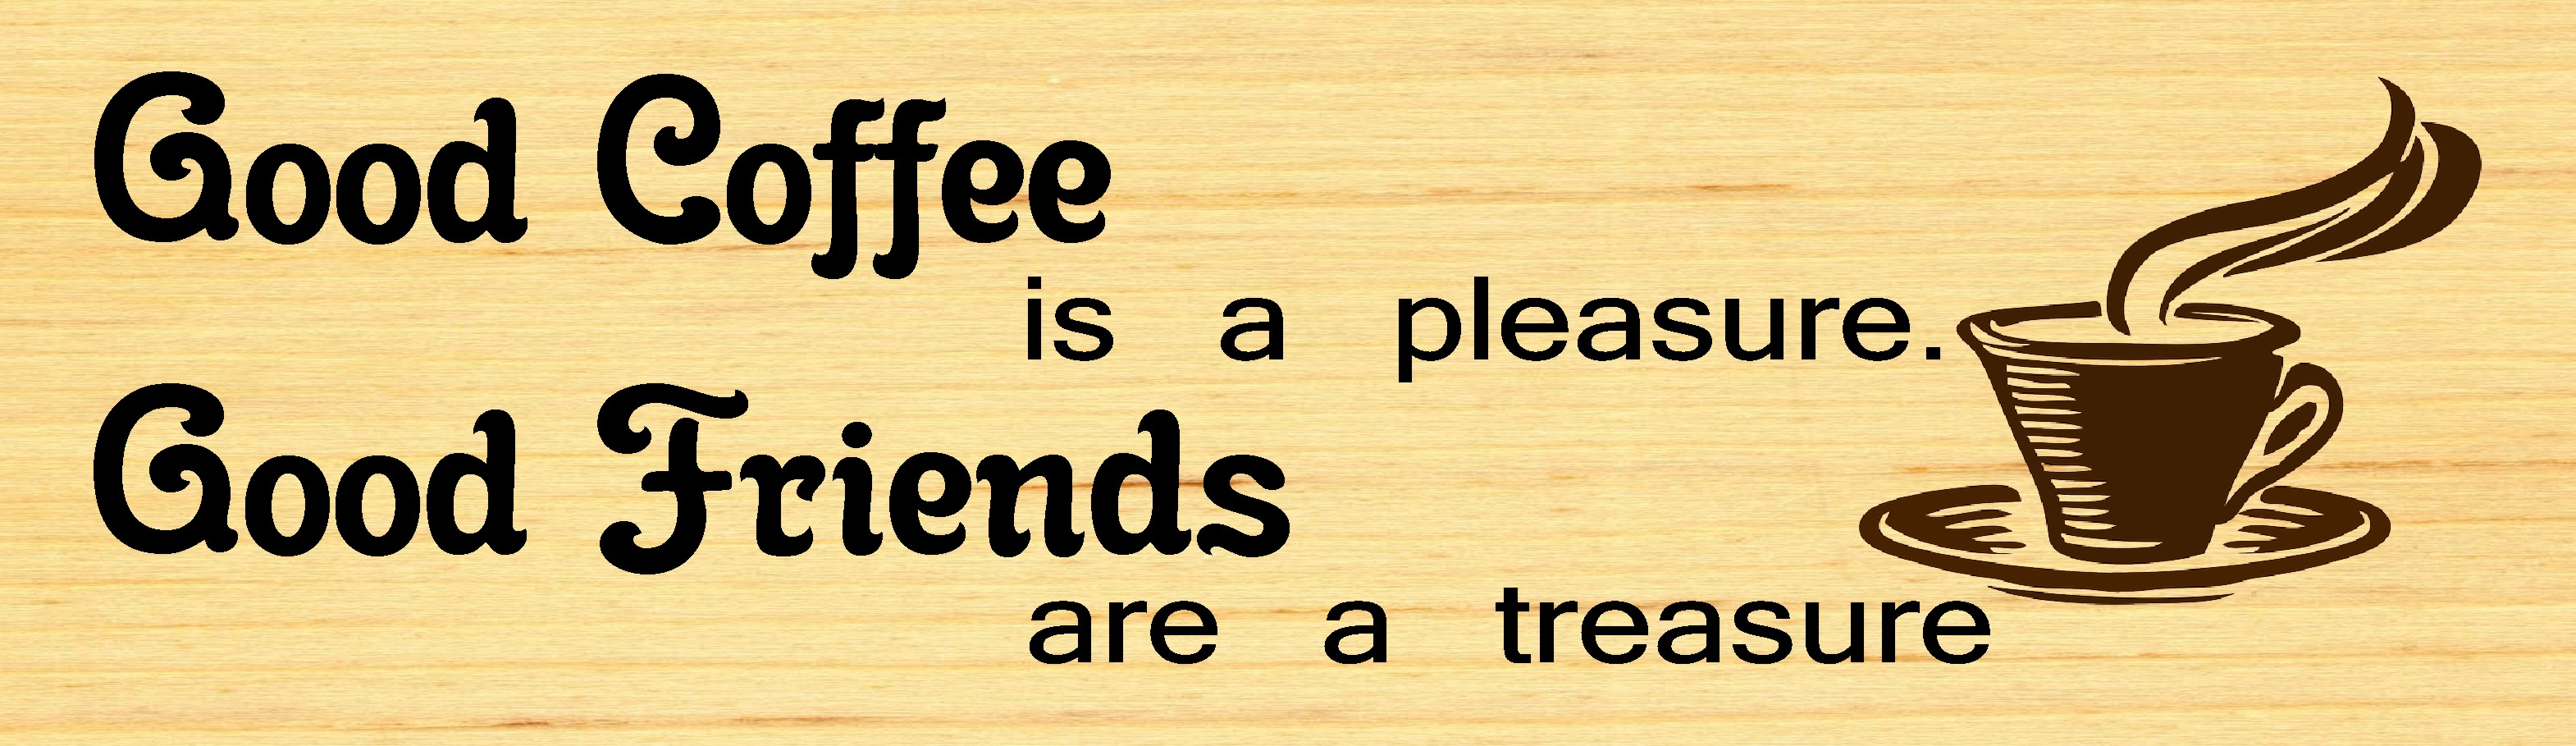 GOOD COFFEE IS A PLEASURE. GOOD FRIENDS ARE A TREASURE 10.5